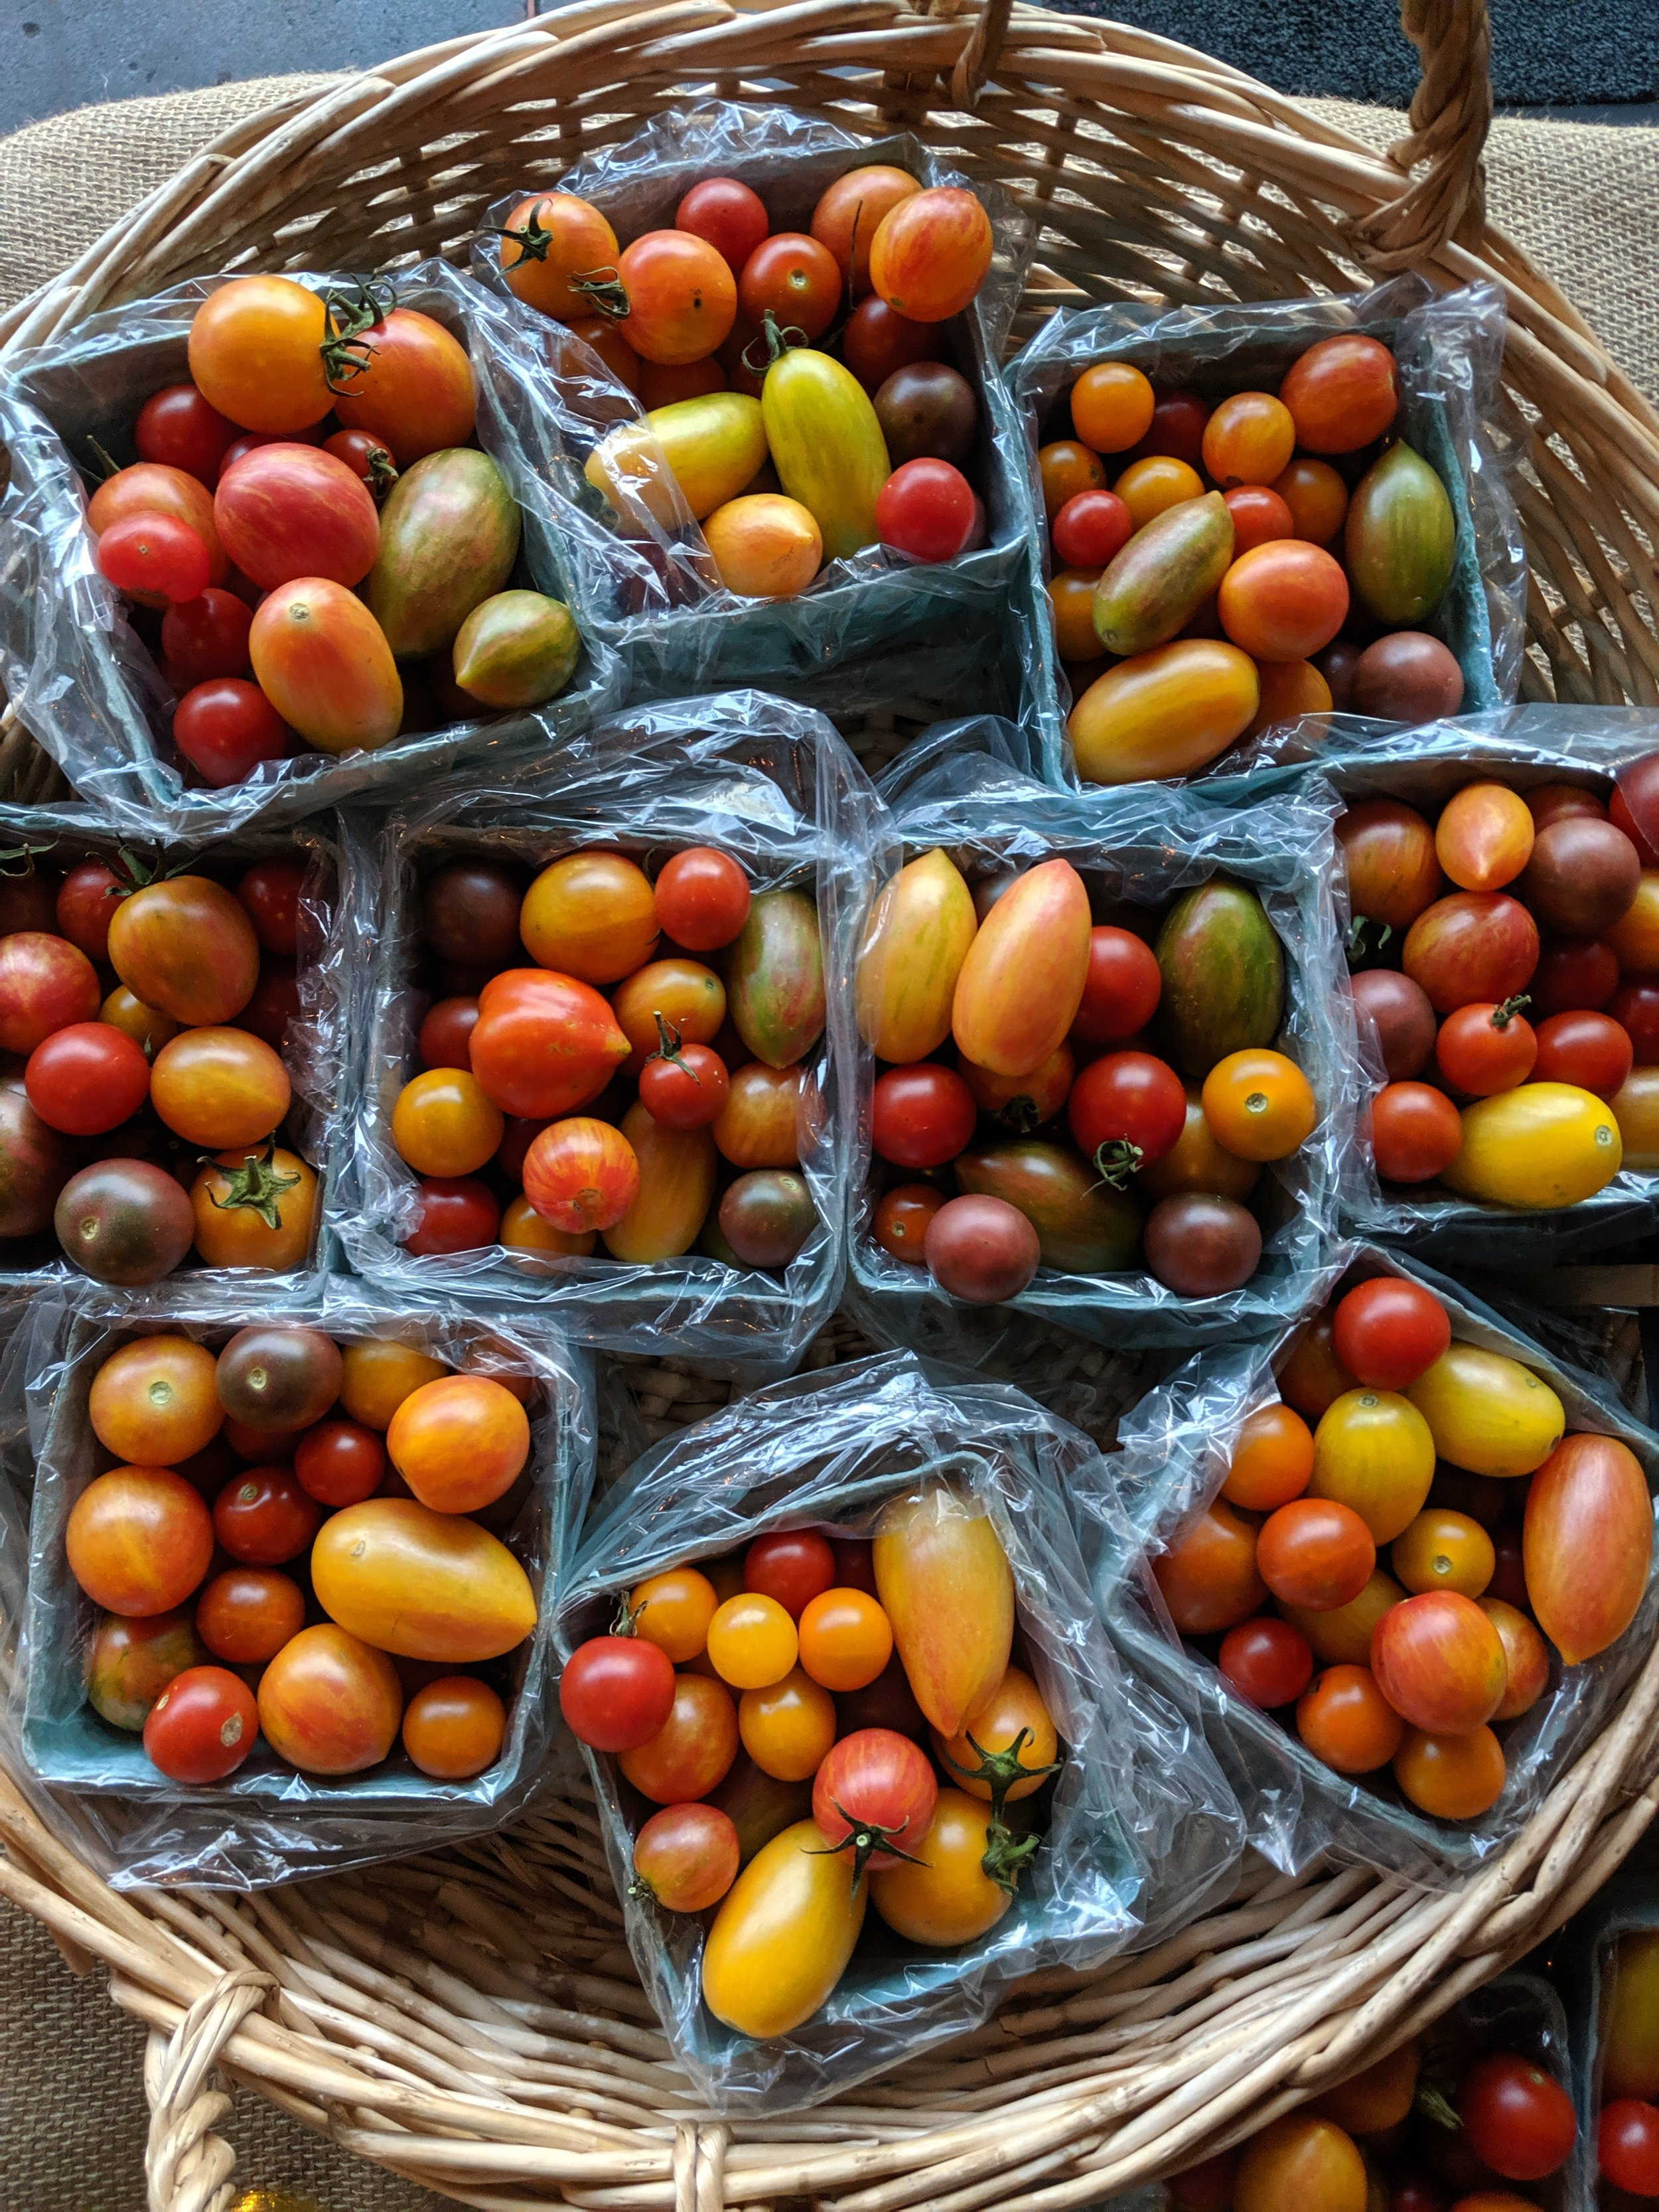 Market Shopping List - 2 large onion1 large red bell pepper3 garlic cloves5 ounces feta cheese6 large eggs3 heads garlic1 bell pepper1 hot pepper1 large cucumber2 lbs roma/plum tomatoes1 cup cherry tomatoes5 lbs heirloom tomatoes